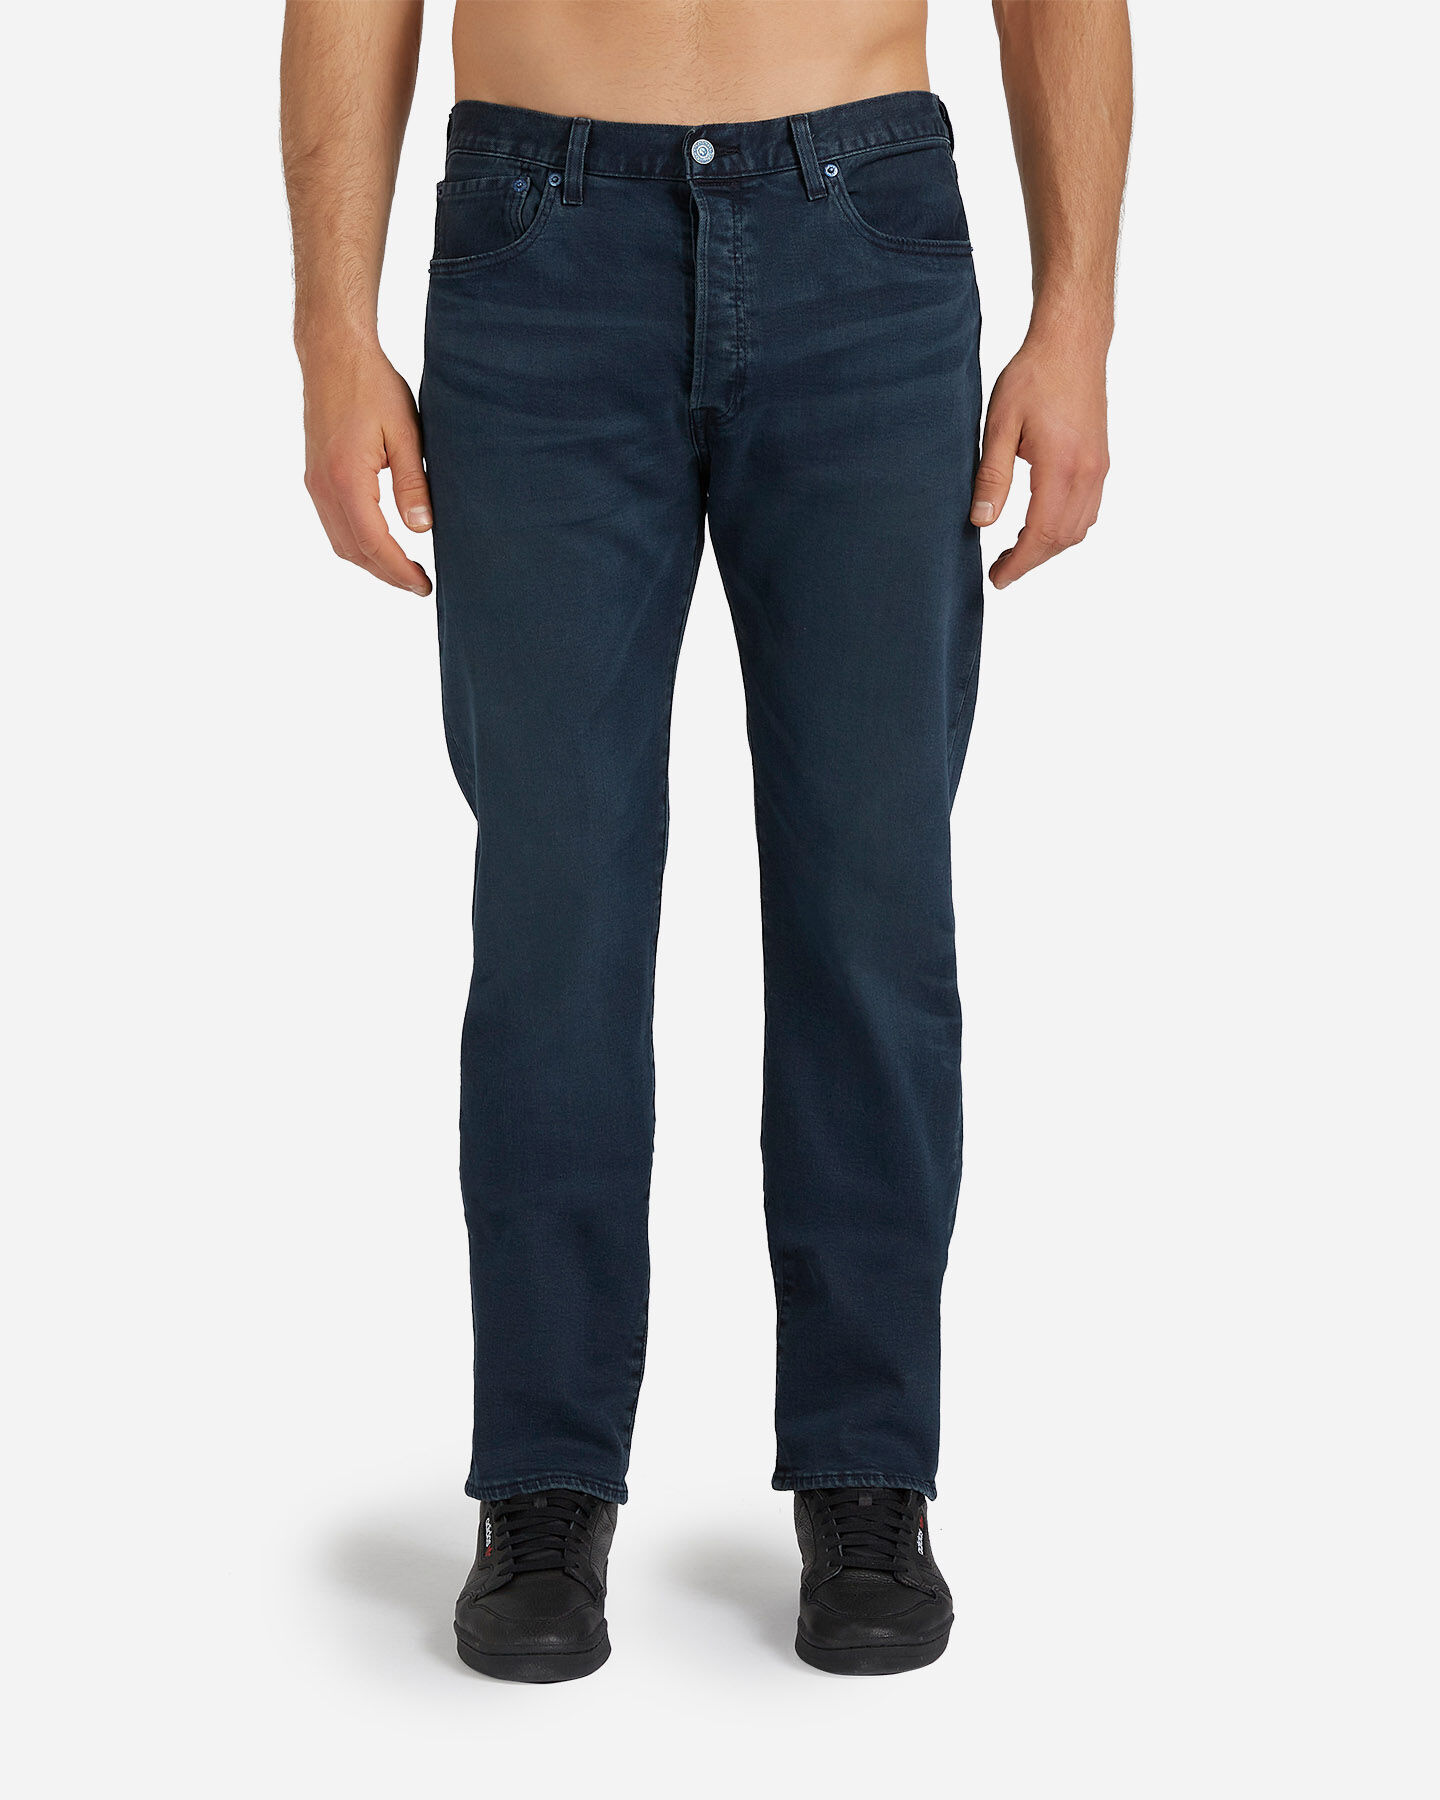 Jeans LEVI'S 501 REGULAR M S4076908 scatto 0